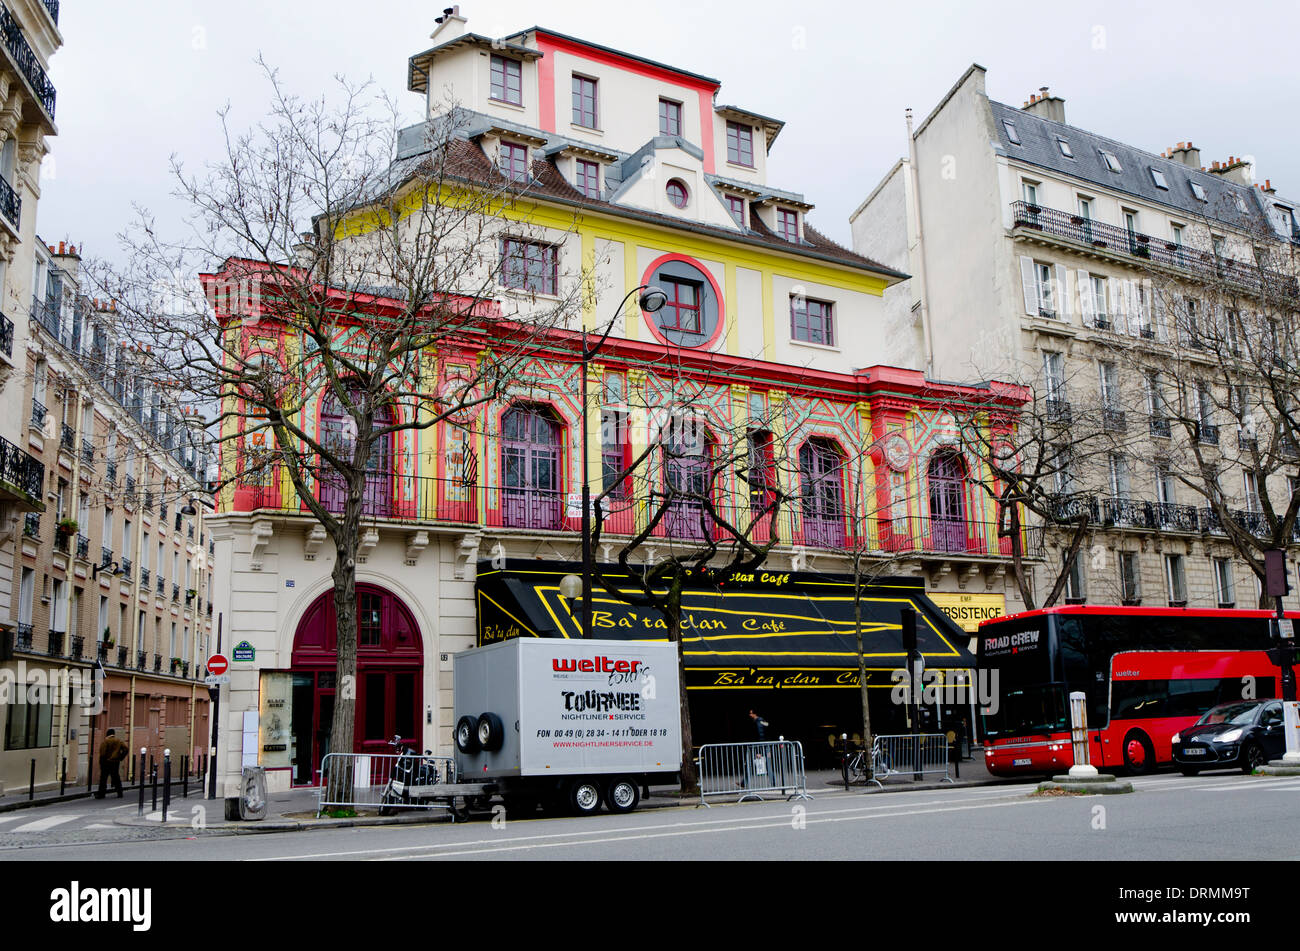 The Bataclan theatre, concert hall cafe, exterior, facade, at boulevard Voltaire in the 11th Arrondissements, Paris, France. - Stock Image